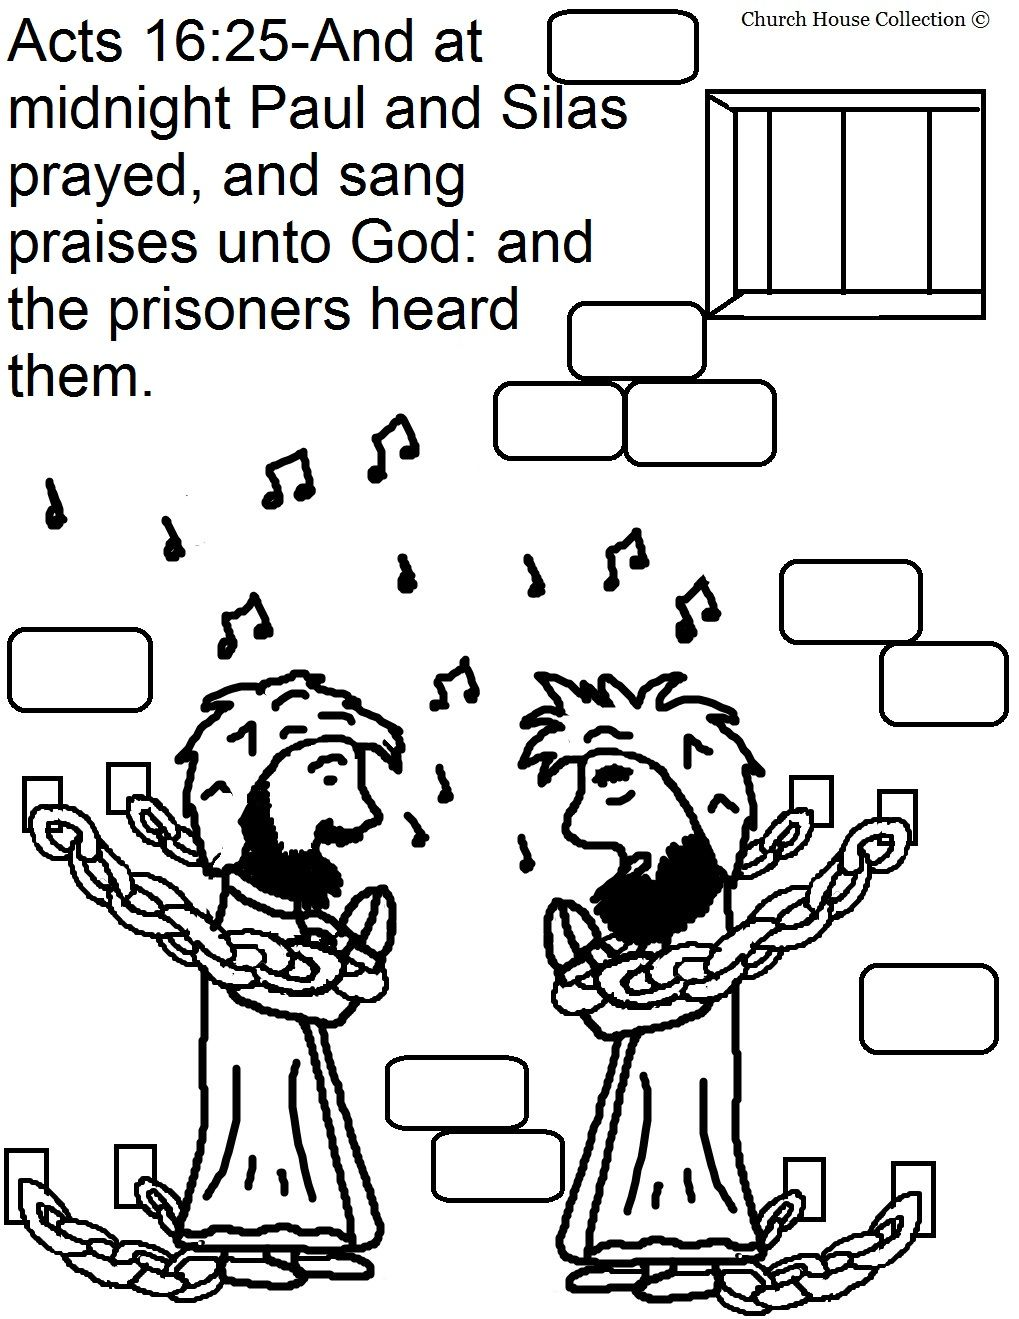 Free coloring pages for youth